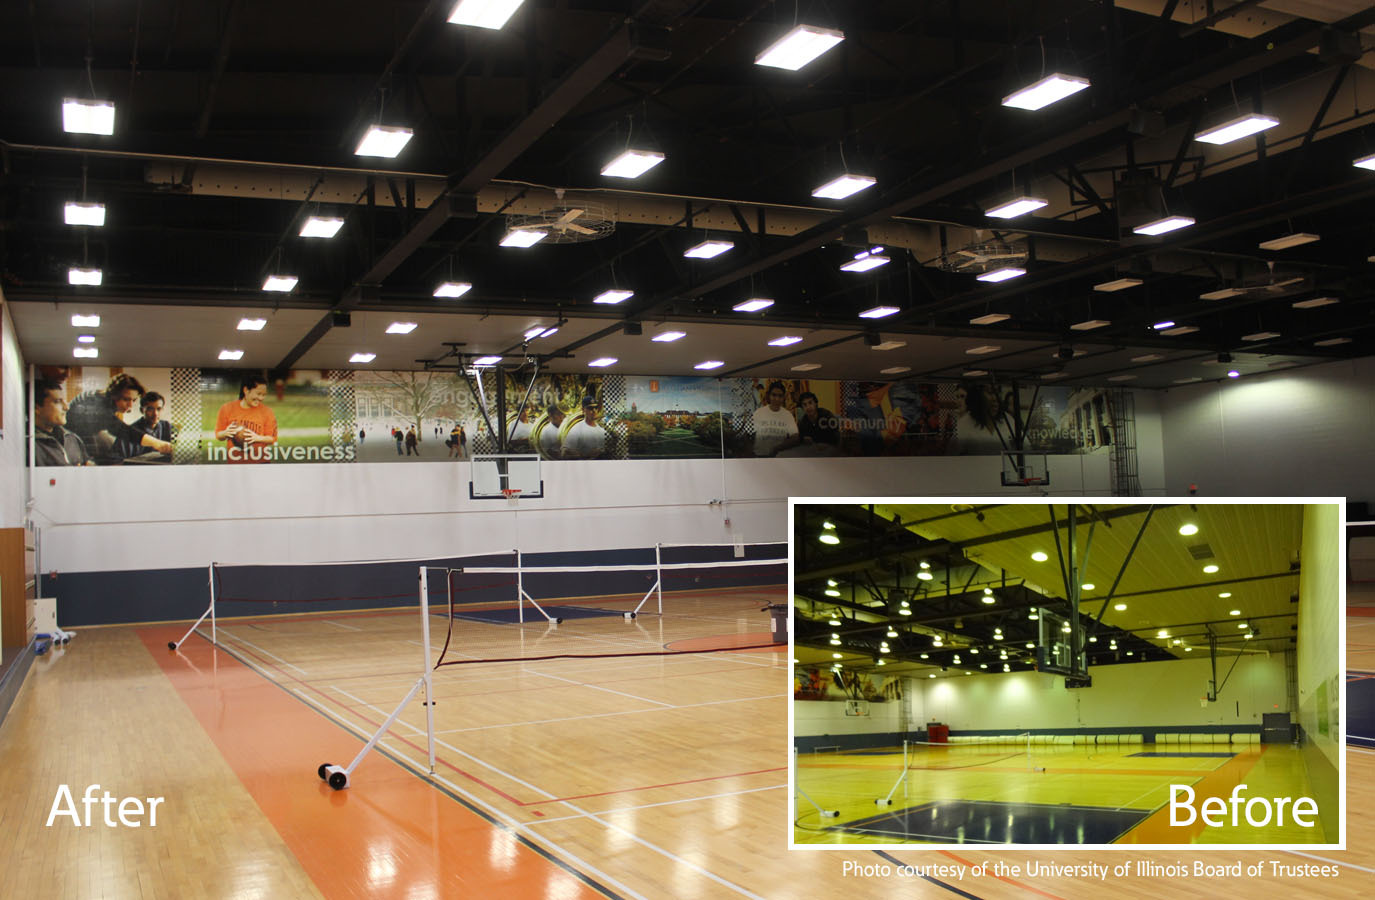 Eaton_Before_and_After_U_of_IL_Gym